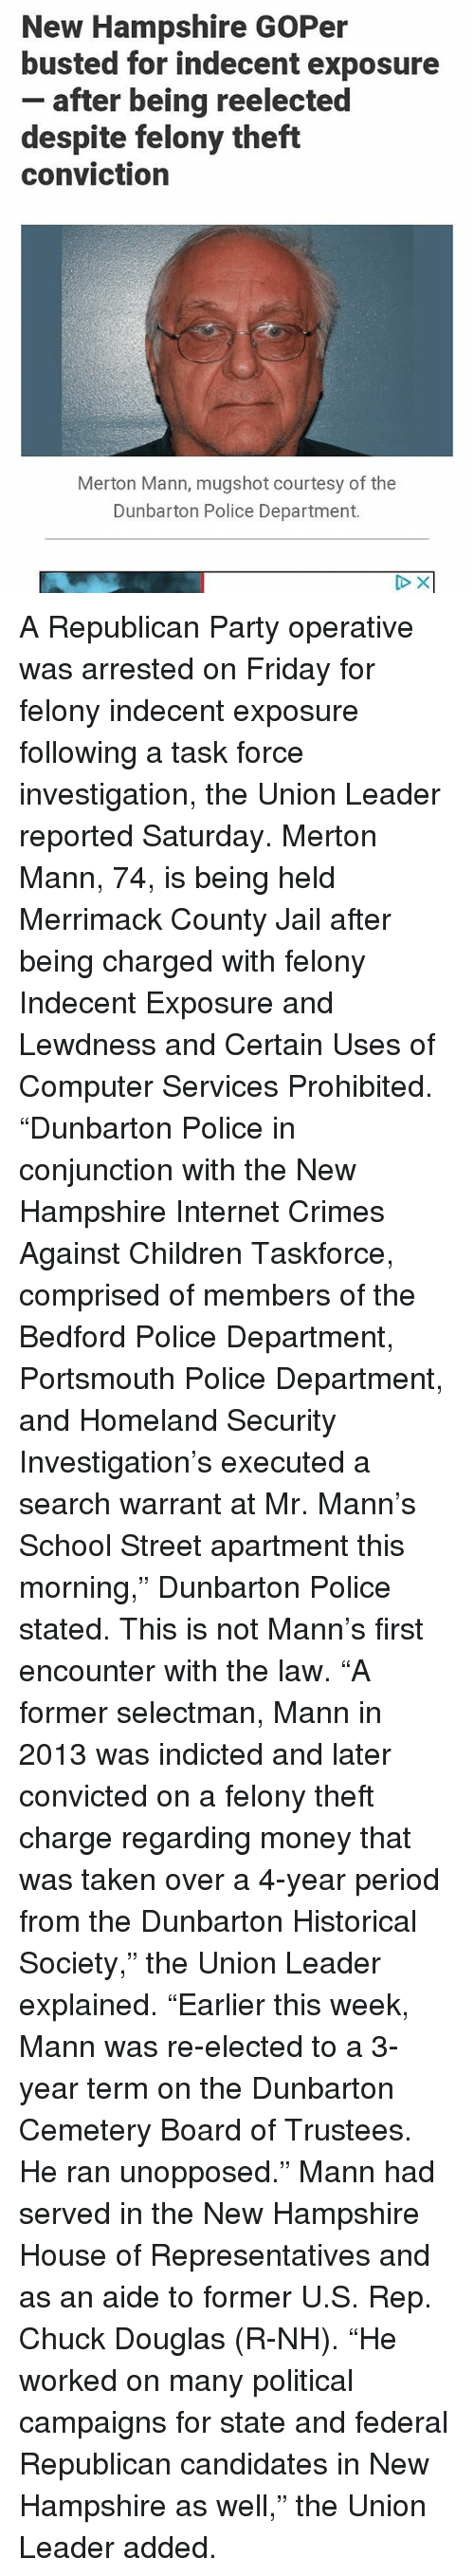 """Children, Friday, and Internet: New Hampshire GOPer  busted for indecent exposure  - after being reelected  despite felony theft  conviction  Merton Mann, mugshot courtesy of the  Dunbarton Police Department. A Republican Party operative was arrested on Friday for felony indecent exposure following a task force investigation, the Union Leader reported Saturday. Merton Mann, 74, is being held Merrimack County Jail after being charged with felony Indecent Exposure and Lewdness and Certain Uses of Computer Services Prohibited. """"Dunbarton Police in conjunction with the New Hampshire Internet Crimes Against Children Taskforce, comprised of members of the Bedford Police Department, Portsmouth Police Department, and Homeland Security Investigation's executed a search warrant at Mr. Mann's School Street apartment this morning,"""" Dunbarton Police stated. This is not Mann's first encounter with the law. """"A former selectman, Mann in 2013 was indicted and later convicted on a felony theft charge regarding money that was taken over a 4-year period from the Dunbarton Historical Society,"""" the Union Leader explained. """"Earlier this week, Mann was re-elected to a 3-year term on the Dunbarton Cemetery Board of Trustees. He ran unopposed."""" Mann had served in the New Hampshire House of Representatives and as an aide to former U.S. Rep. Chuck Douglas (R-NH). """"He worked on many political campaigns for state and federal Republican candidates in New Hampshire as well,"""" the Union Leader added."""